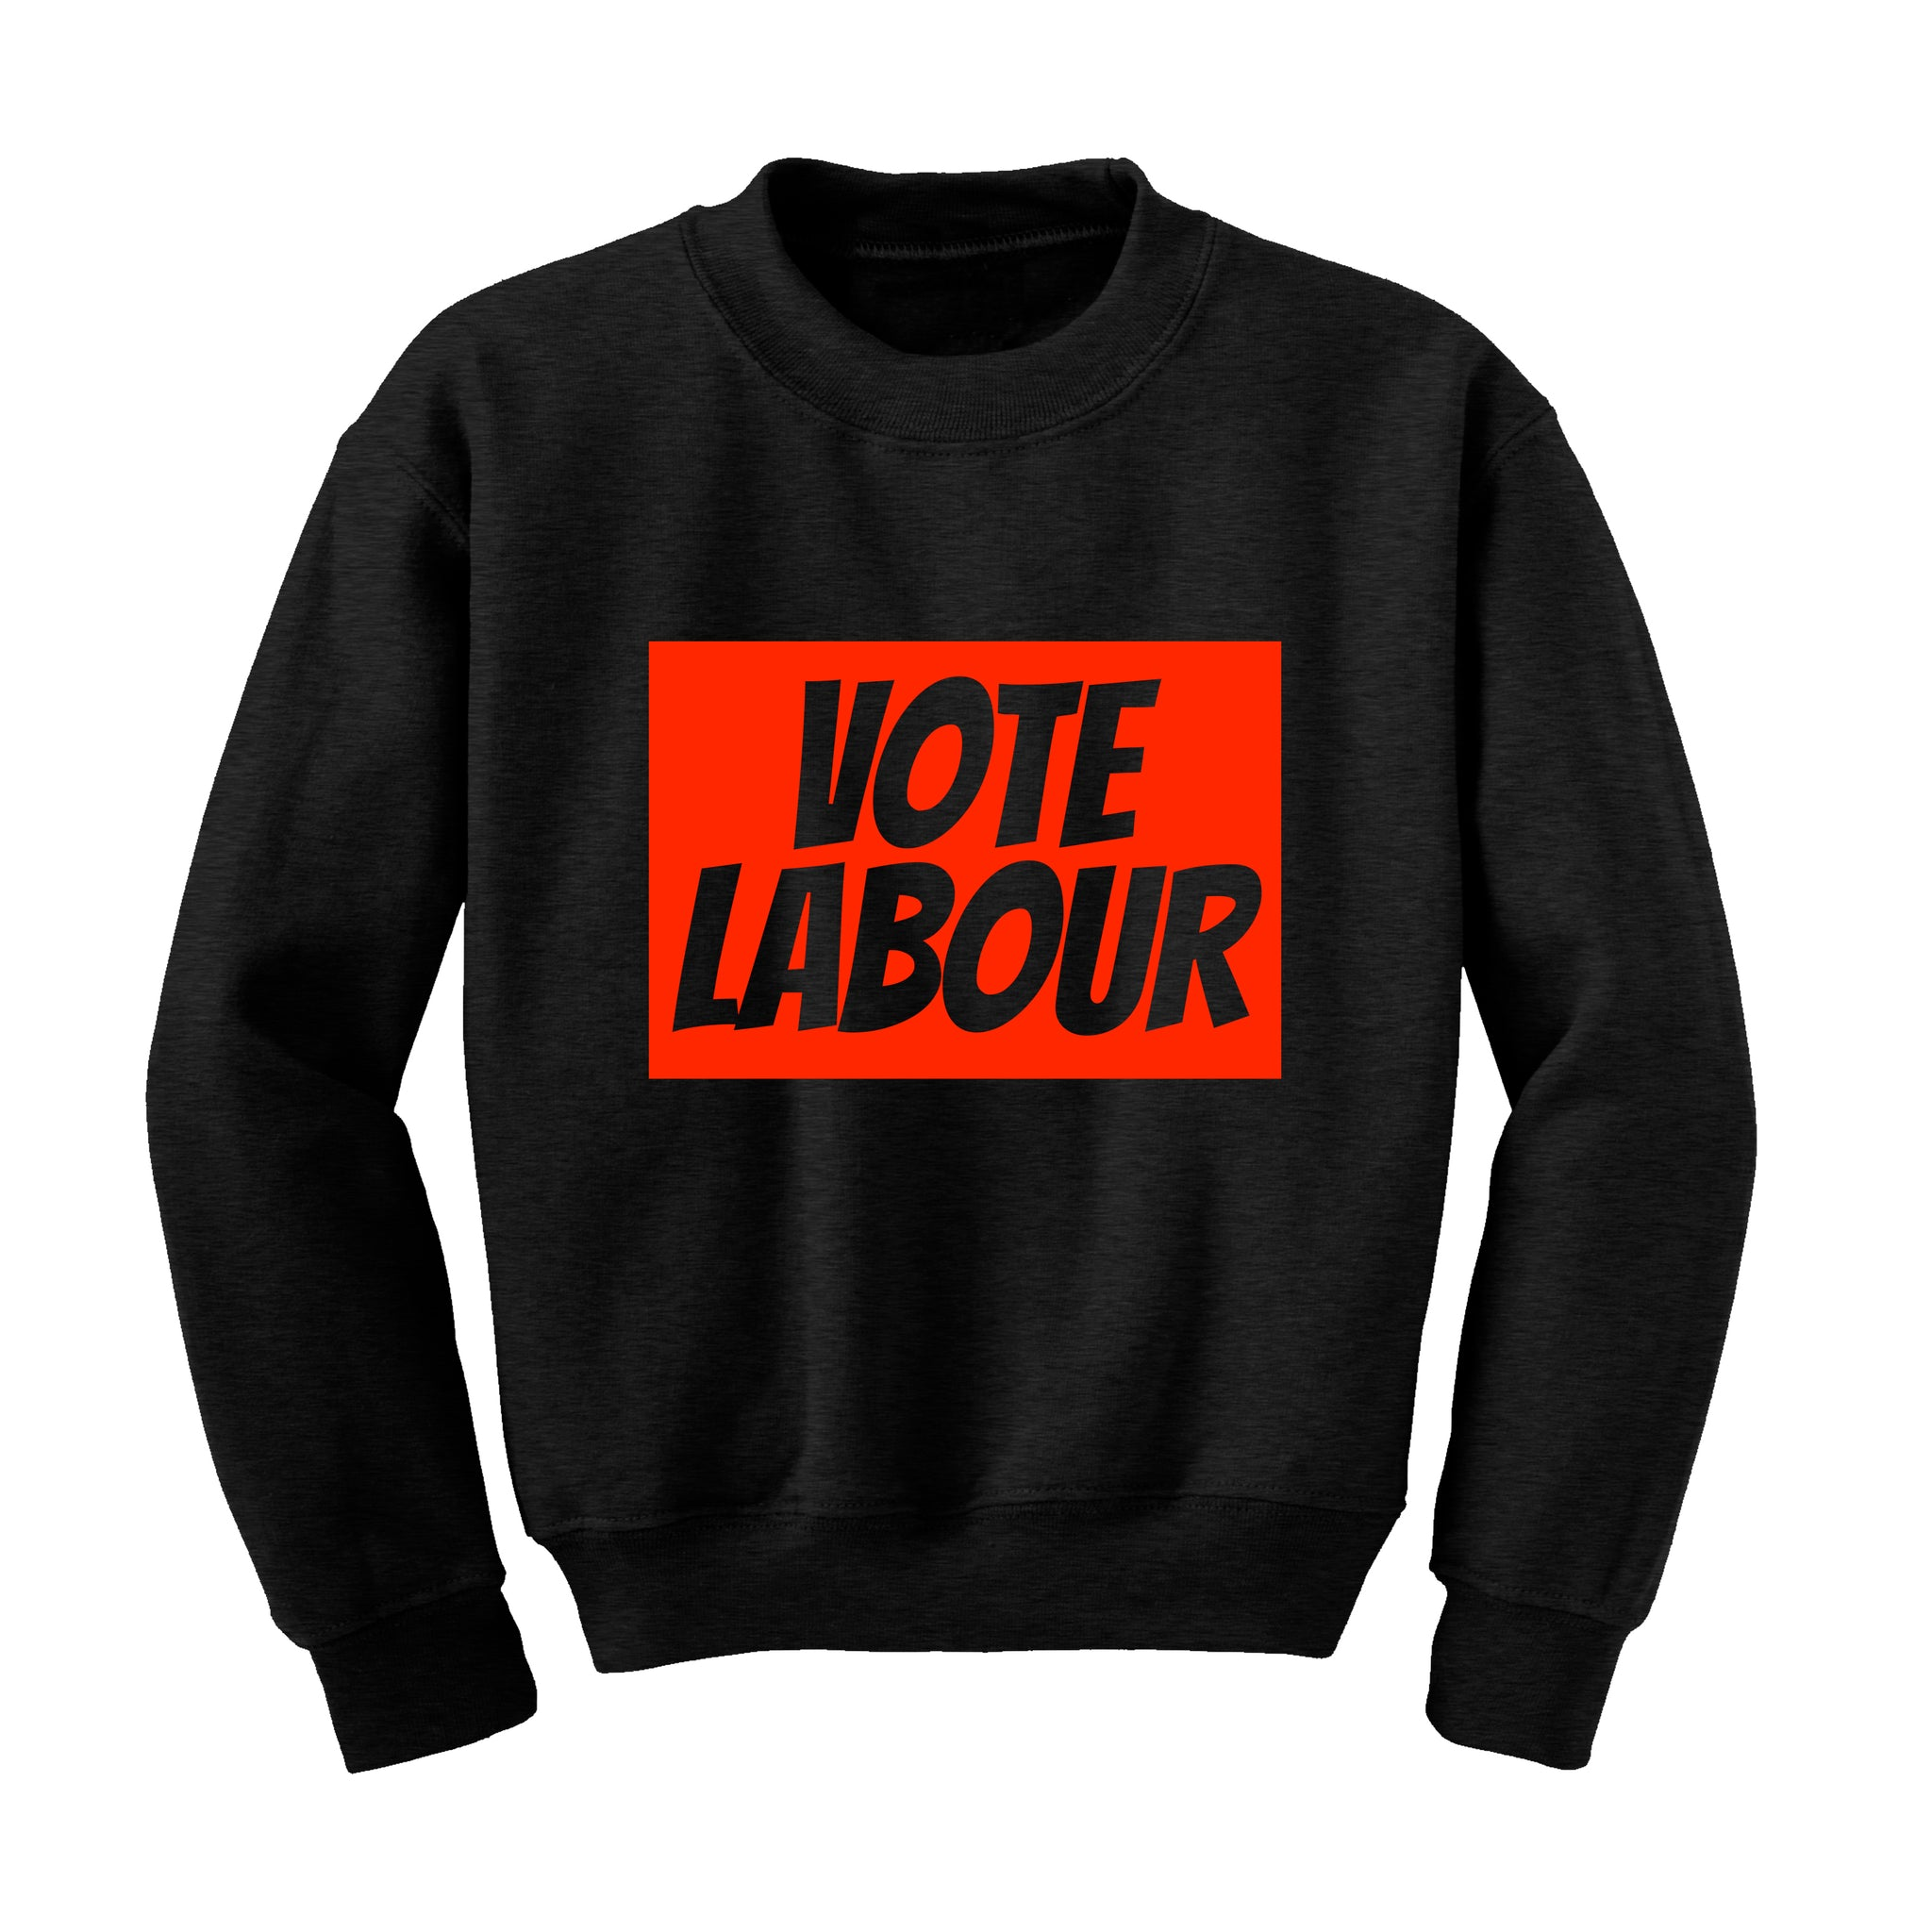 VOTE LABOUR Slogan Sweatshirt Labour Party Politics General Election Jeremy Corbyn FqICoFp